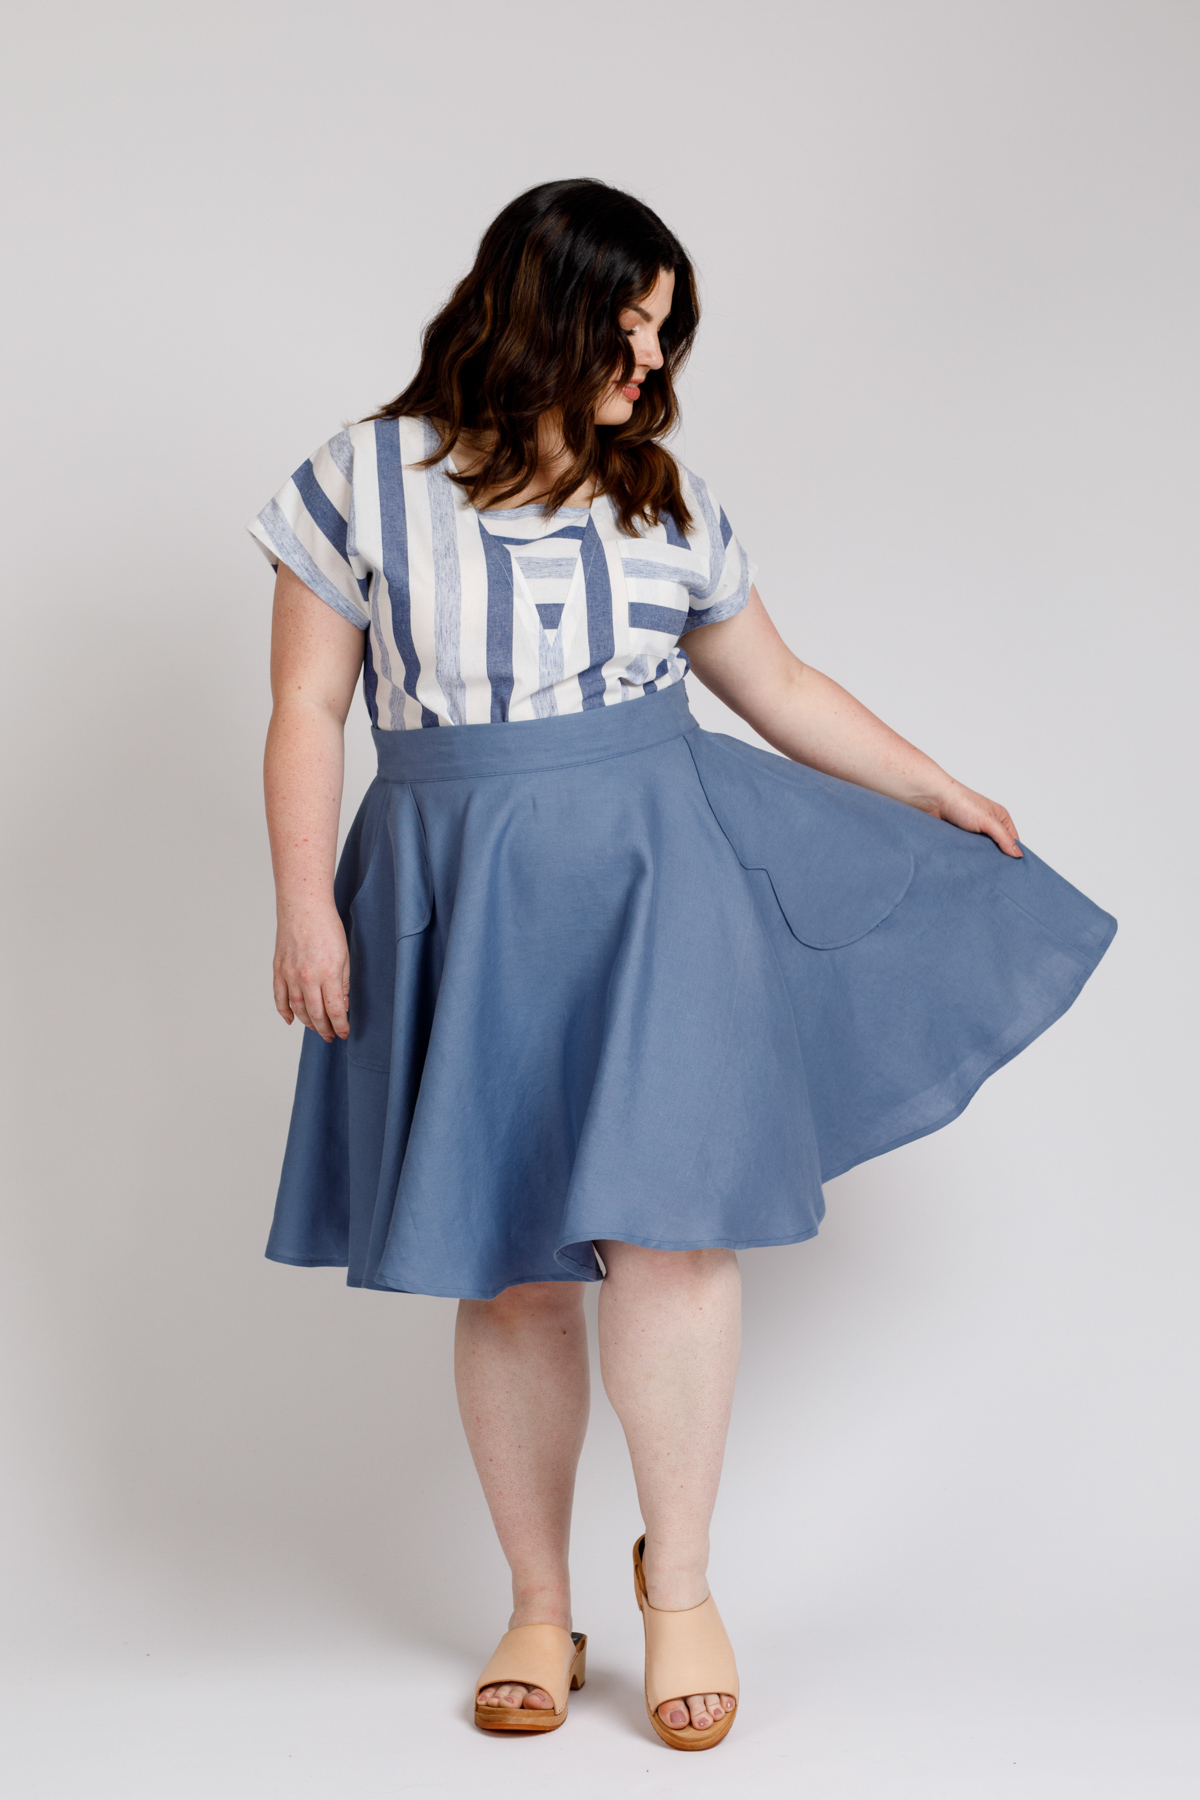 Veronika skirt now available in extended sizes